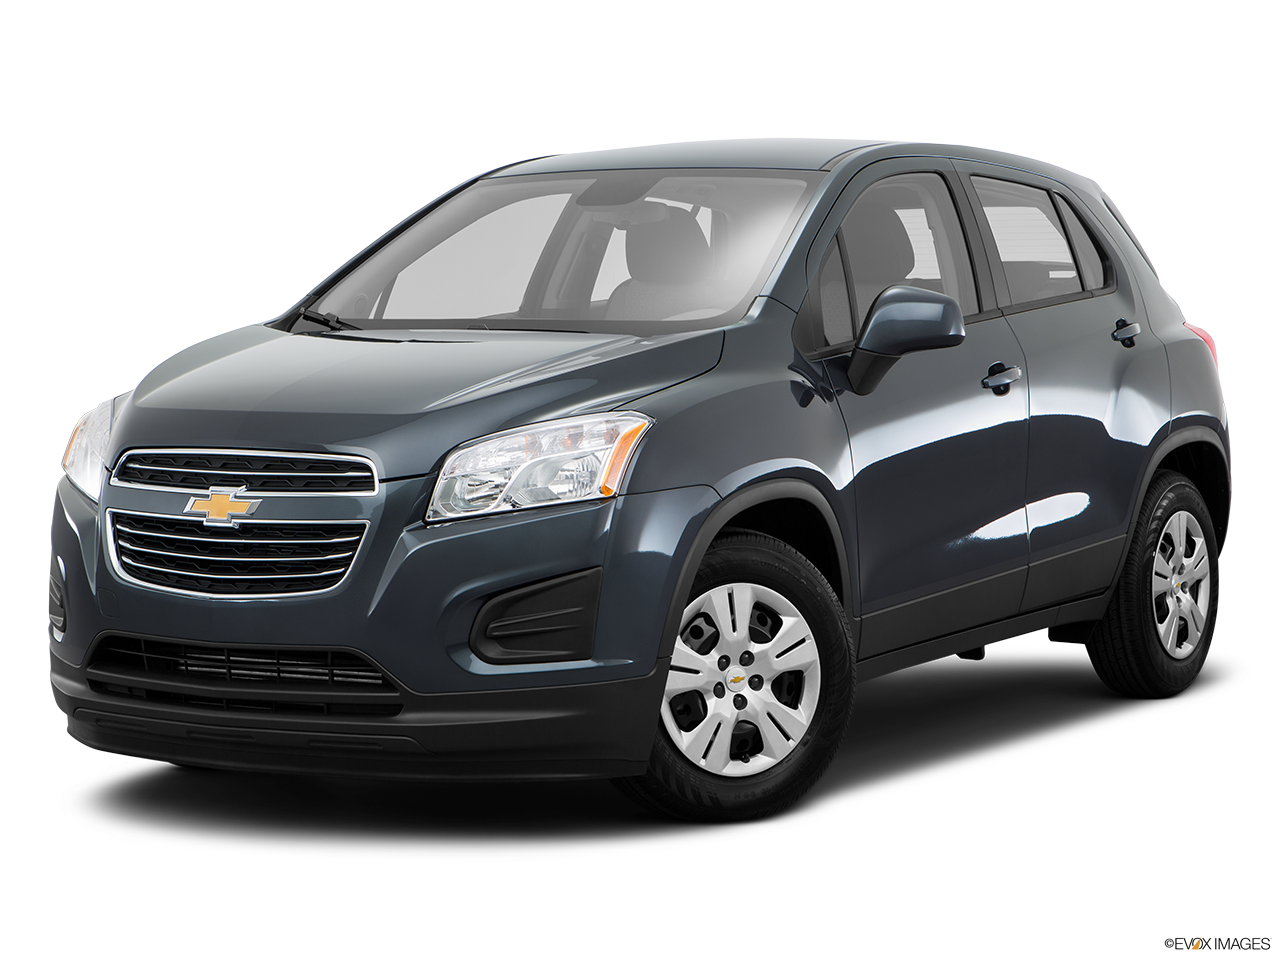 Clp 2017 Chevrolet Silverado 1500 Vs 2017 Ford F 150 further Car Transmissions in addition 2016 Chevrolet Trax Dealer In H ton Roads as well 2014 Subaru Brz in addition 10 Ton Tandem Dually Gooseneck Deck Over Trailer Flickr. on chevy maintenance schedule